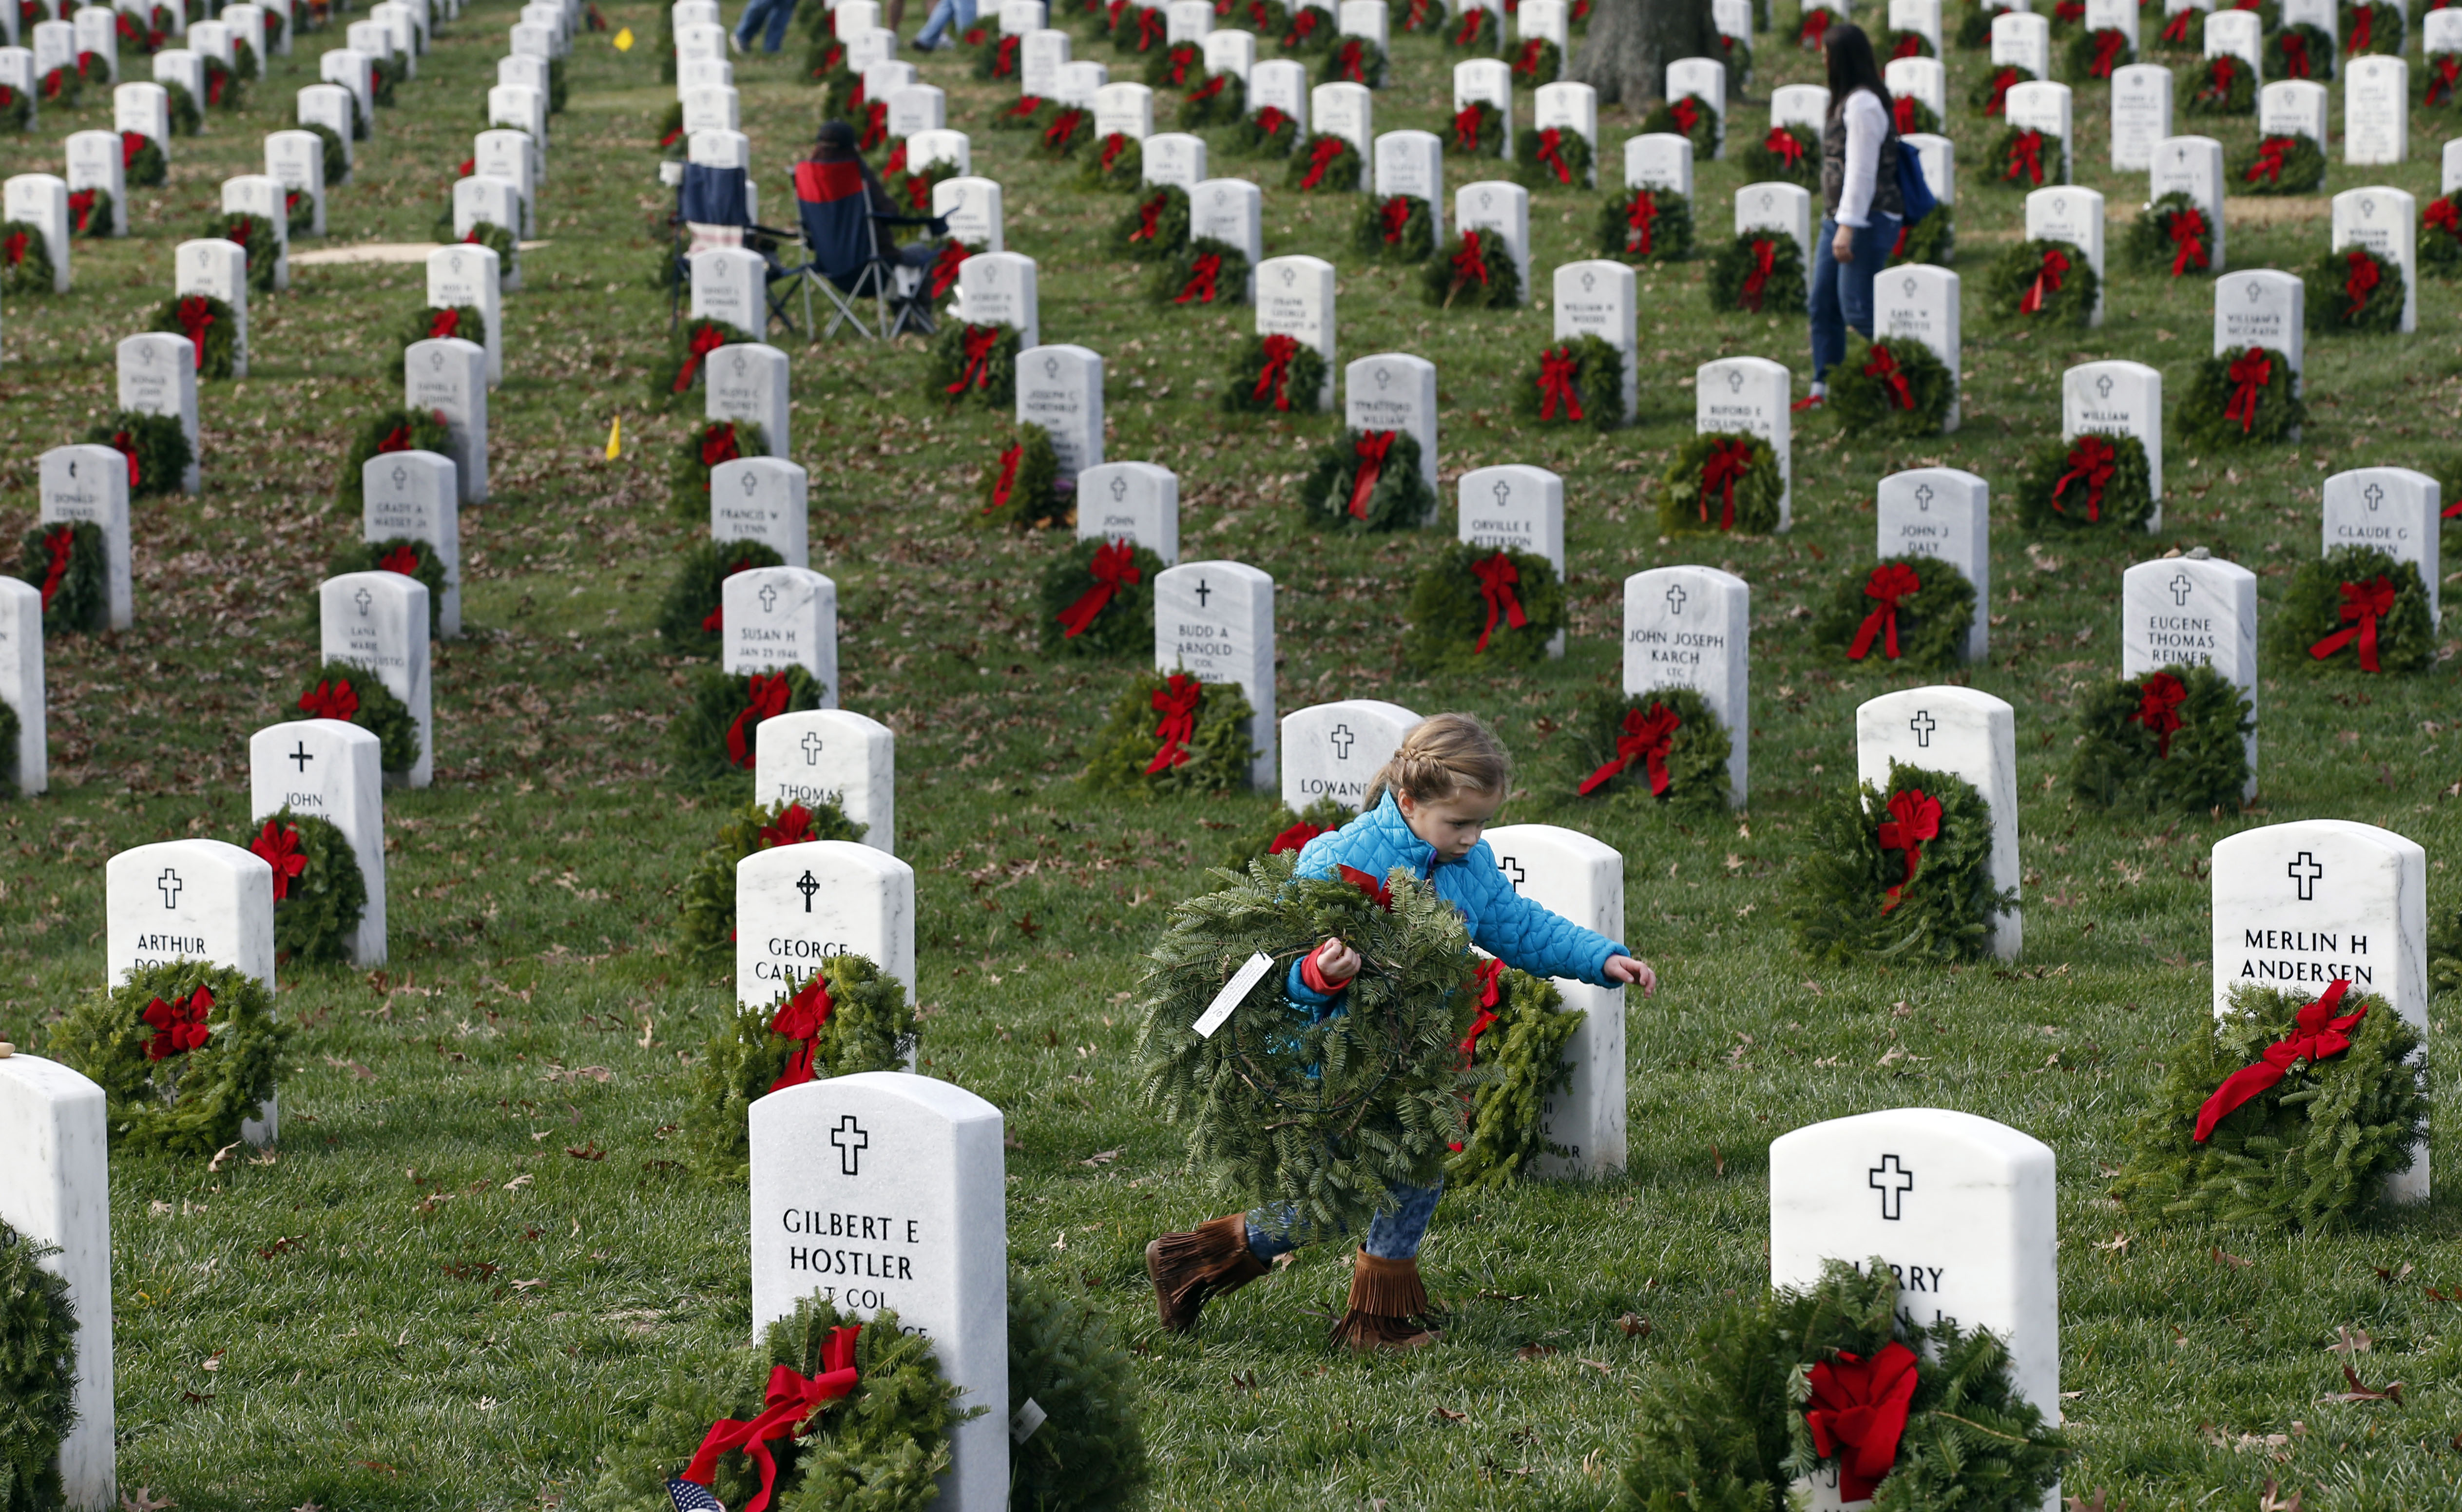 Volunteers needed for annual wreath-laying at Arlington National Cemetery